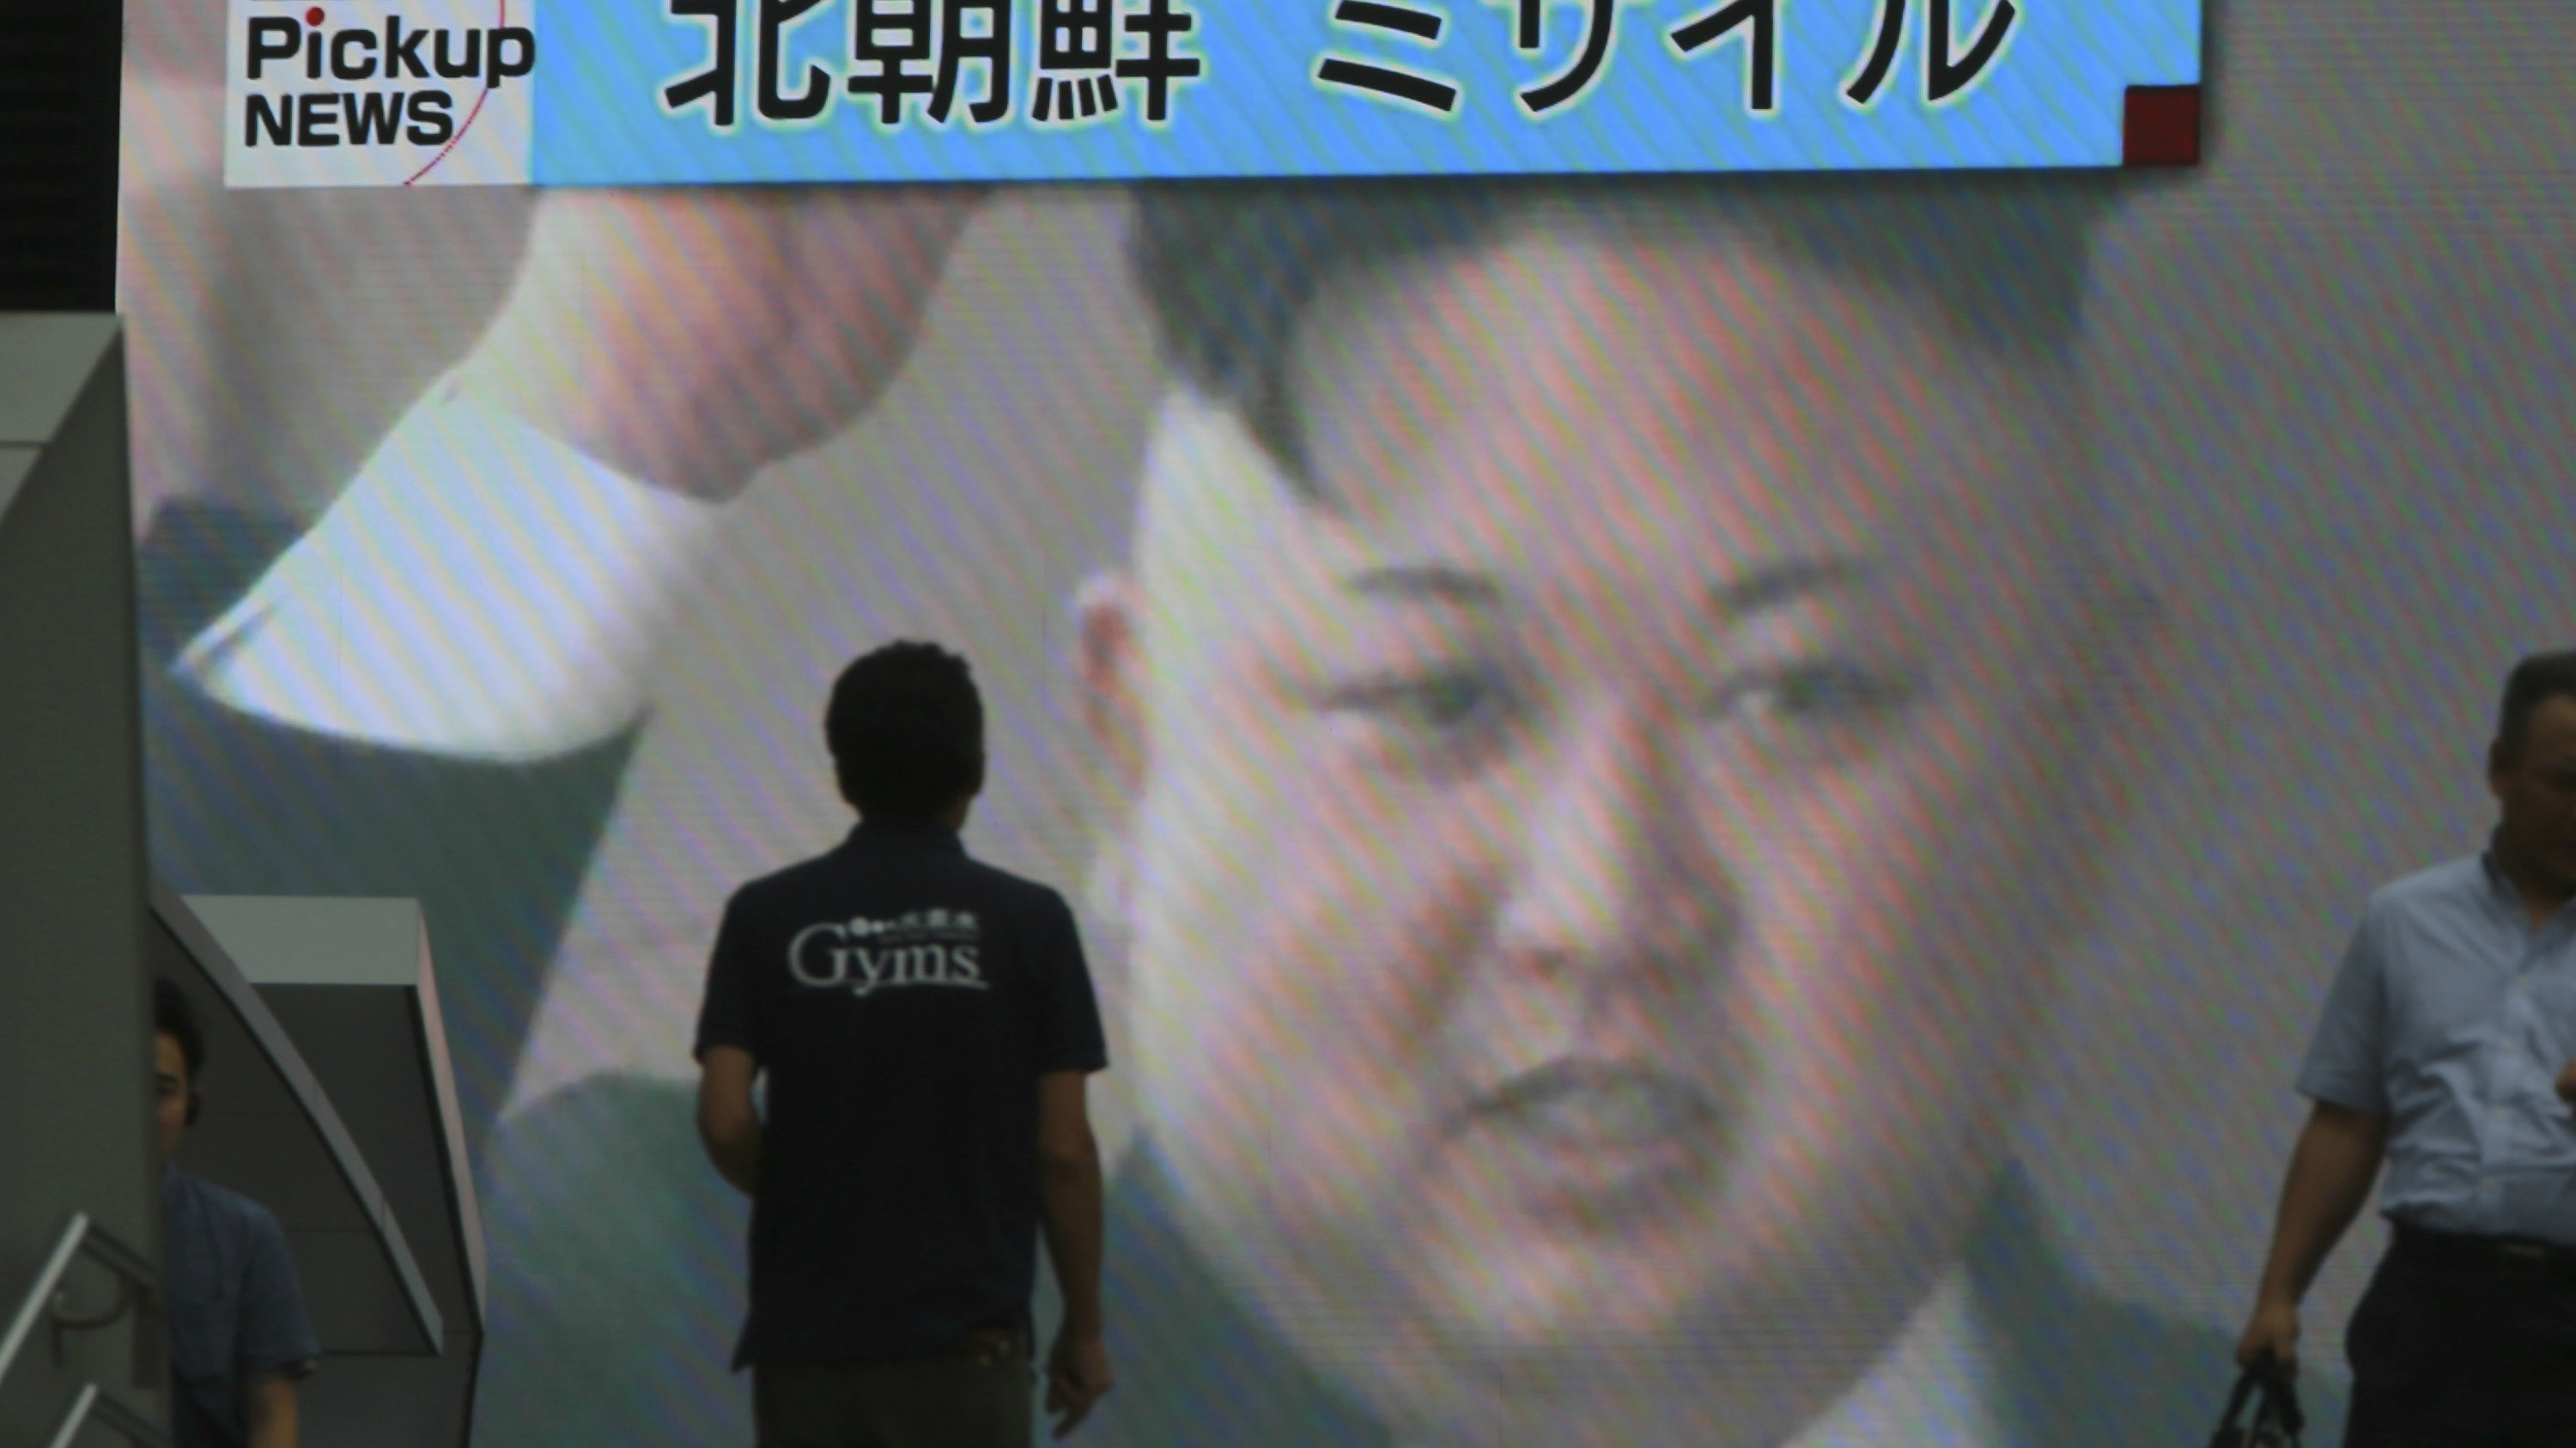 FILE - A television shows an image of North Korean leader Kim Jong Un while reporting North Korea's missile test which landed in the waters of Japan's economic zone in Tokyo, July 4, 2017.